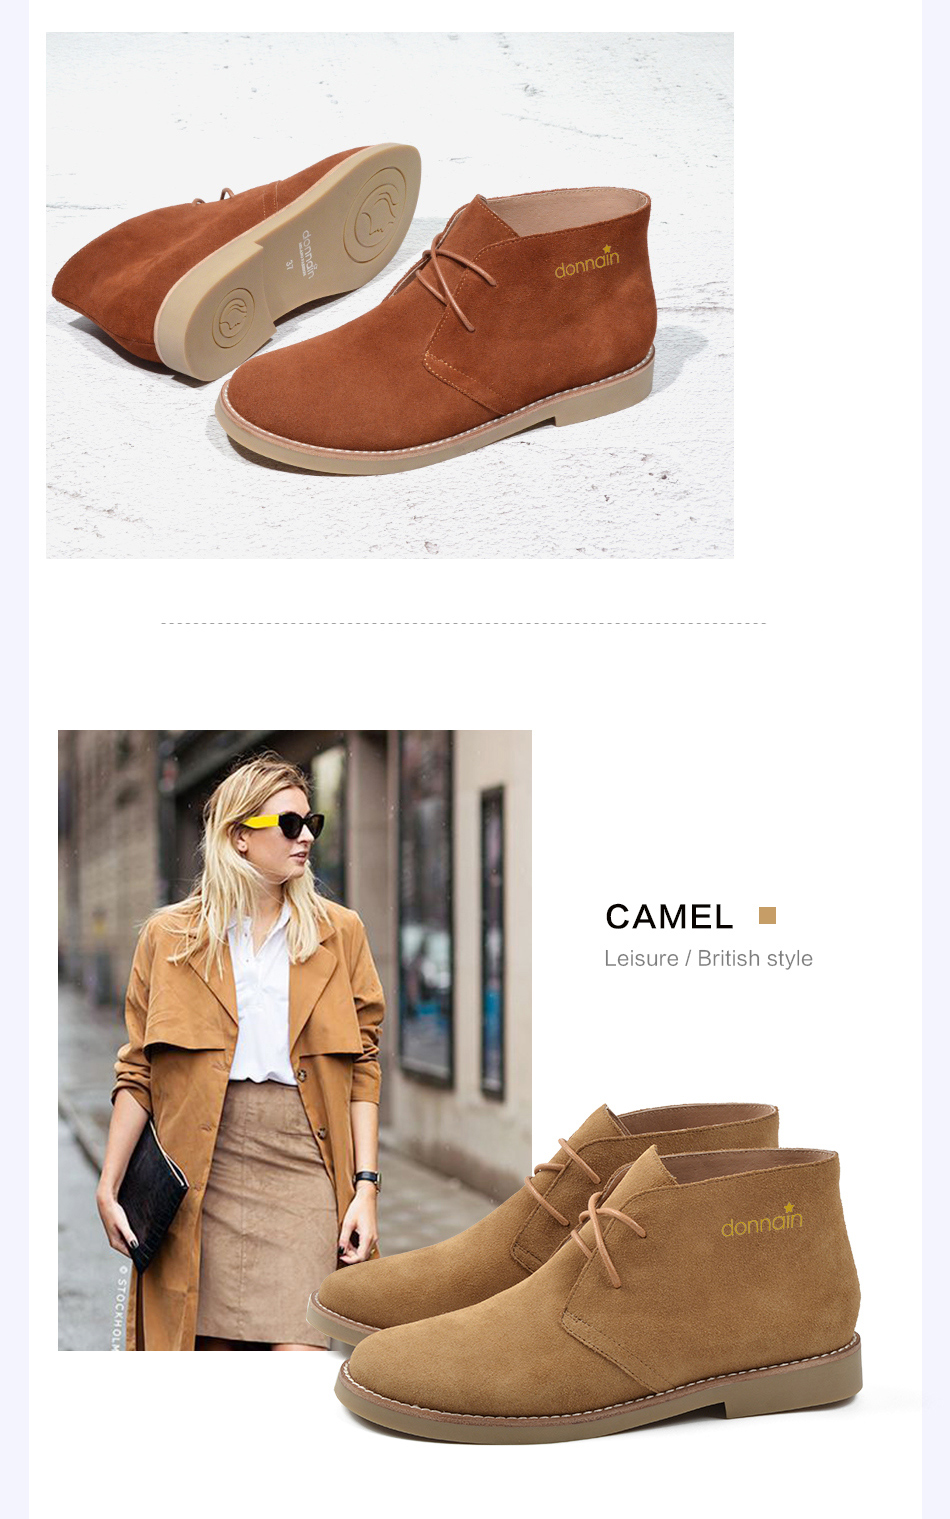 Donna-in Fashion Martin Boots Women Adult Autumn Spring 2019 Ankle Boots Suede Leather Lace-up Casual Low Heel Shoes Women (13)